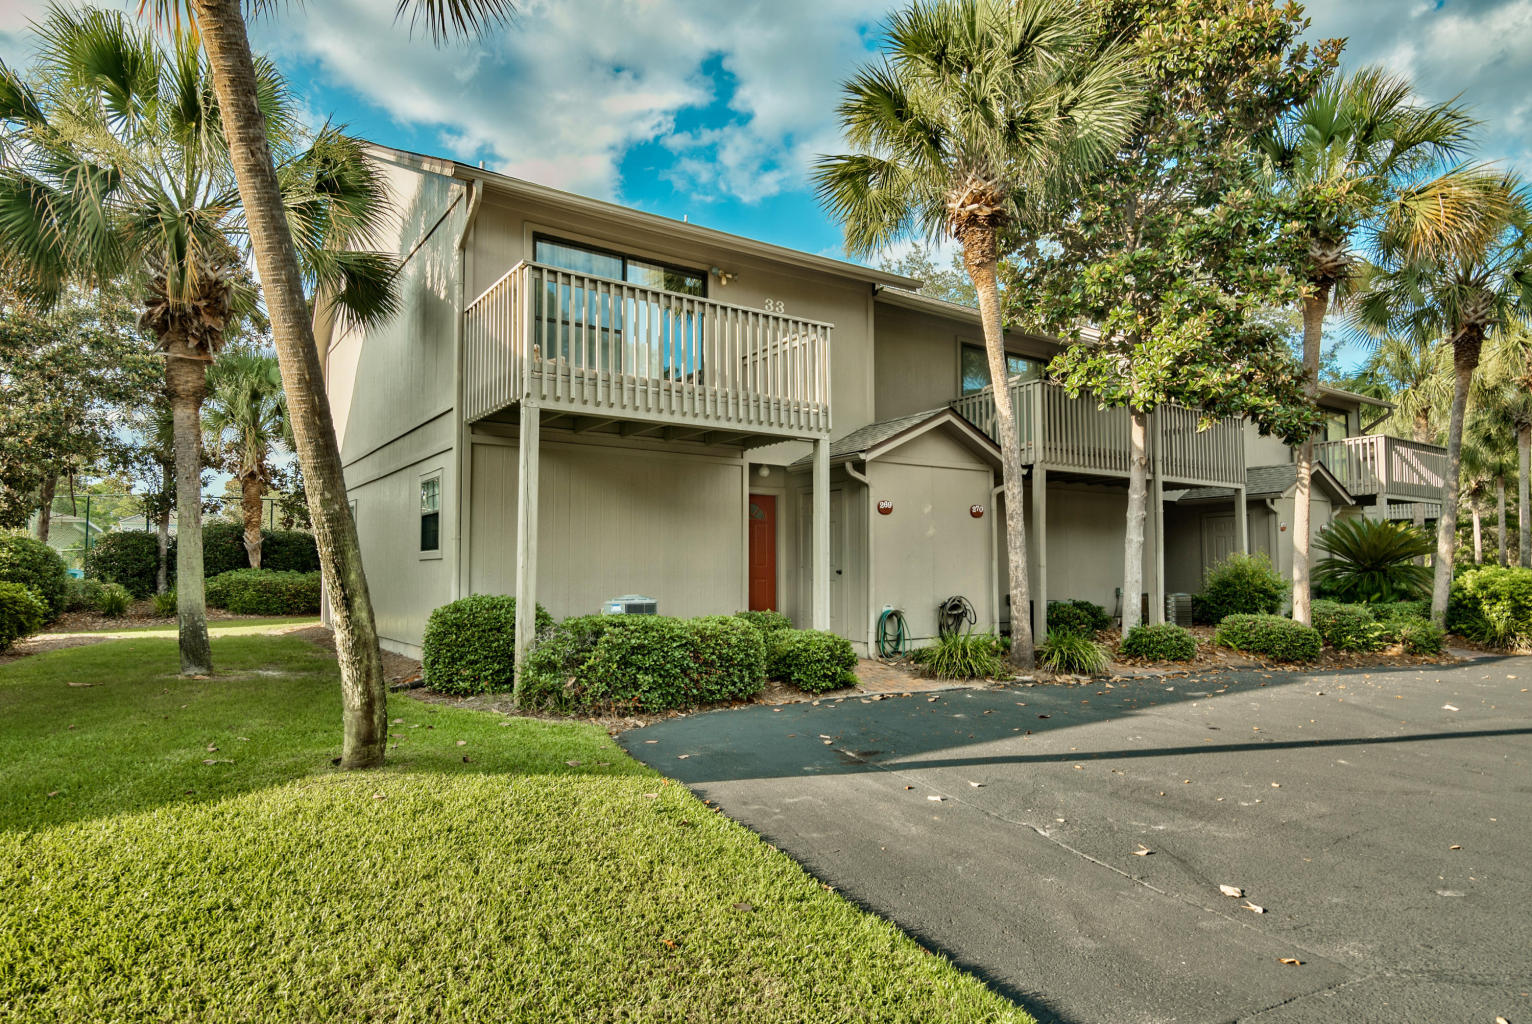 33 Cypress Street Unit 269, Santa Rosa Beach, FL  32459